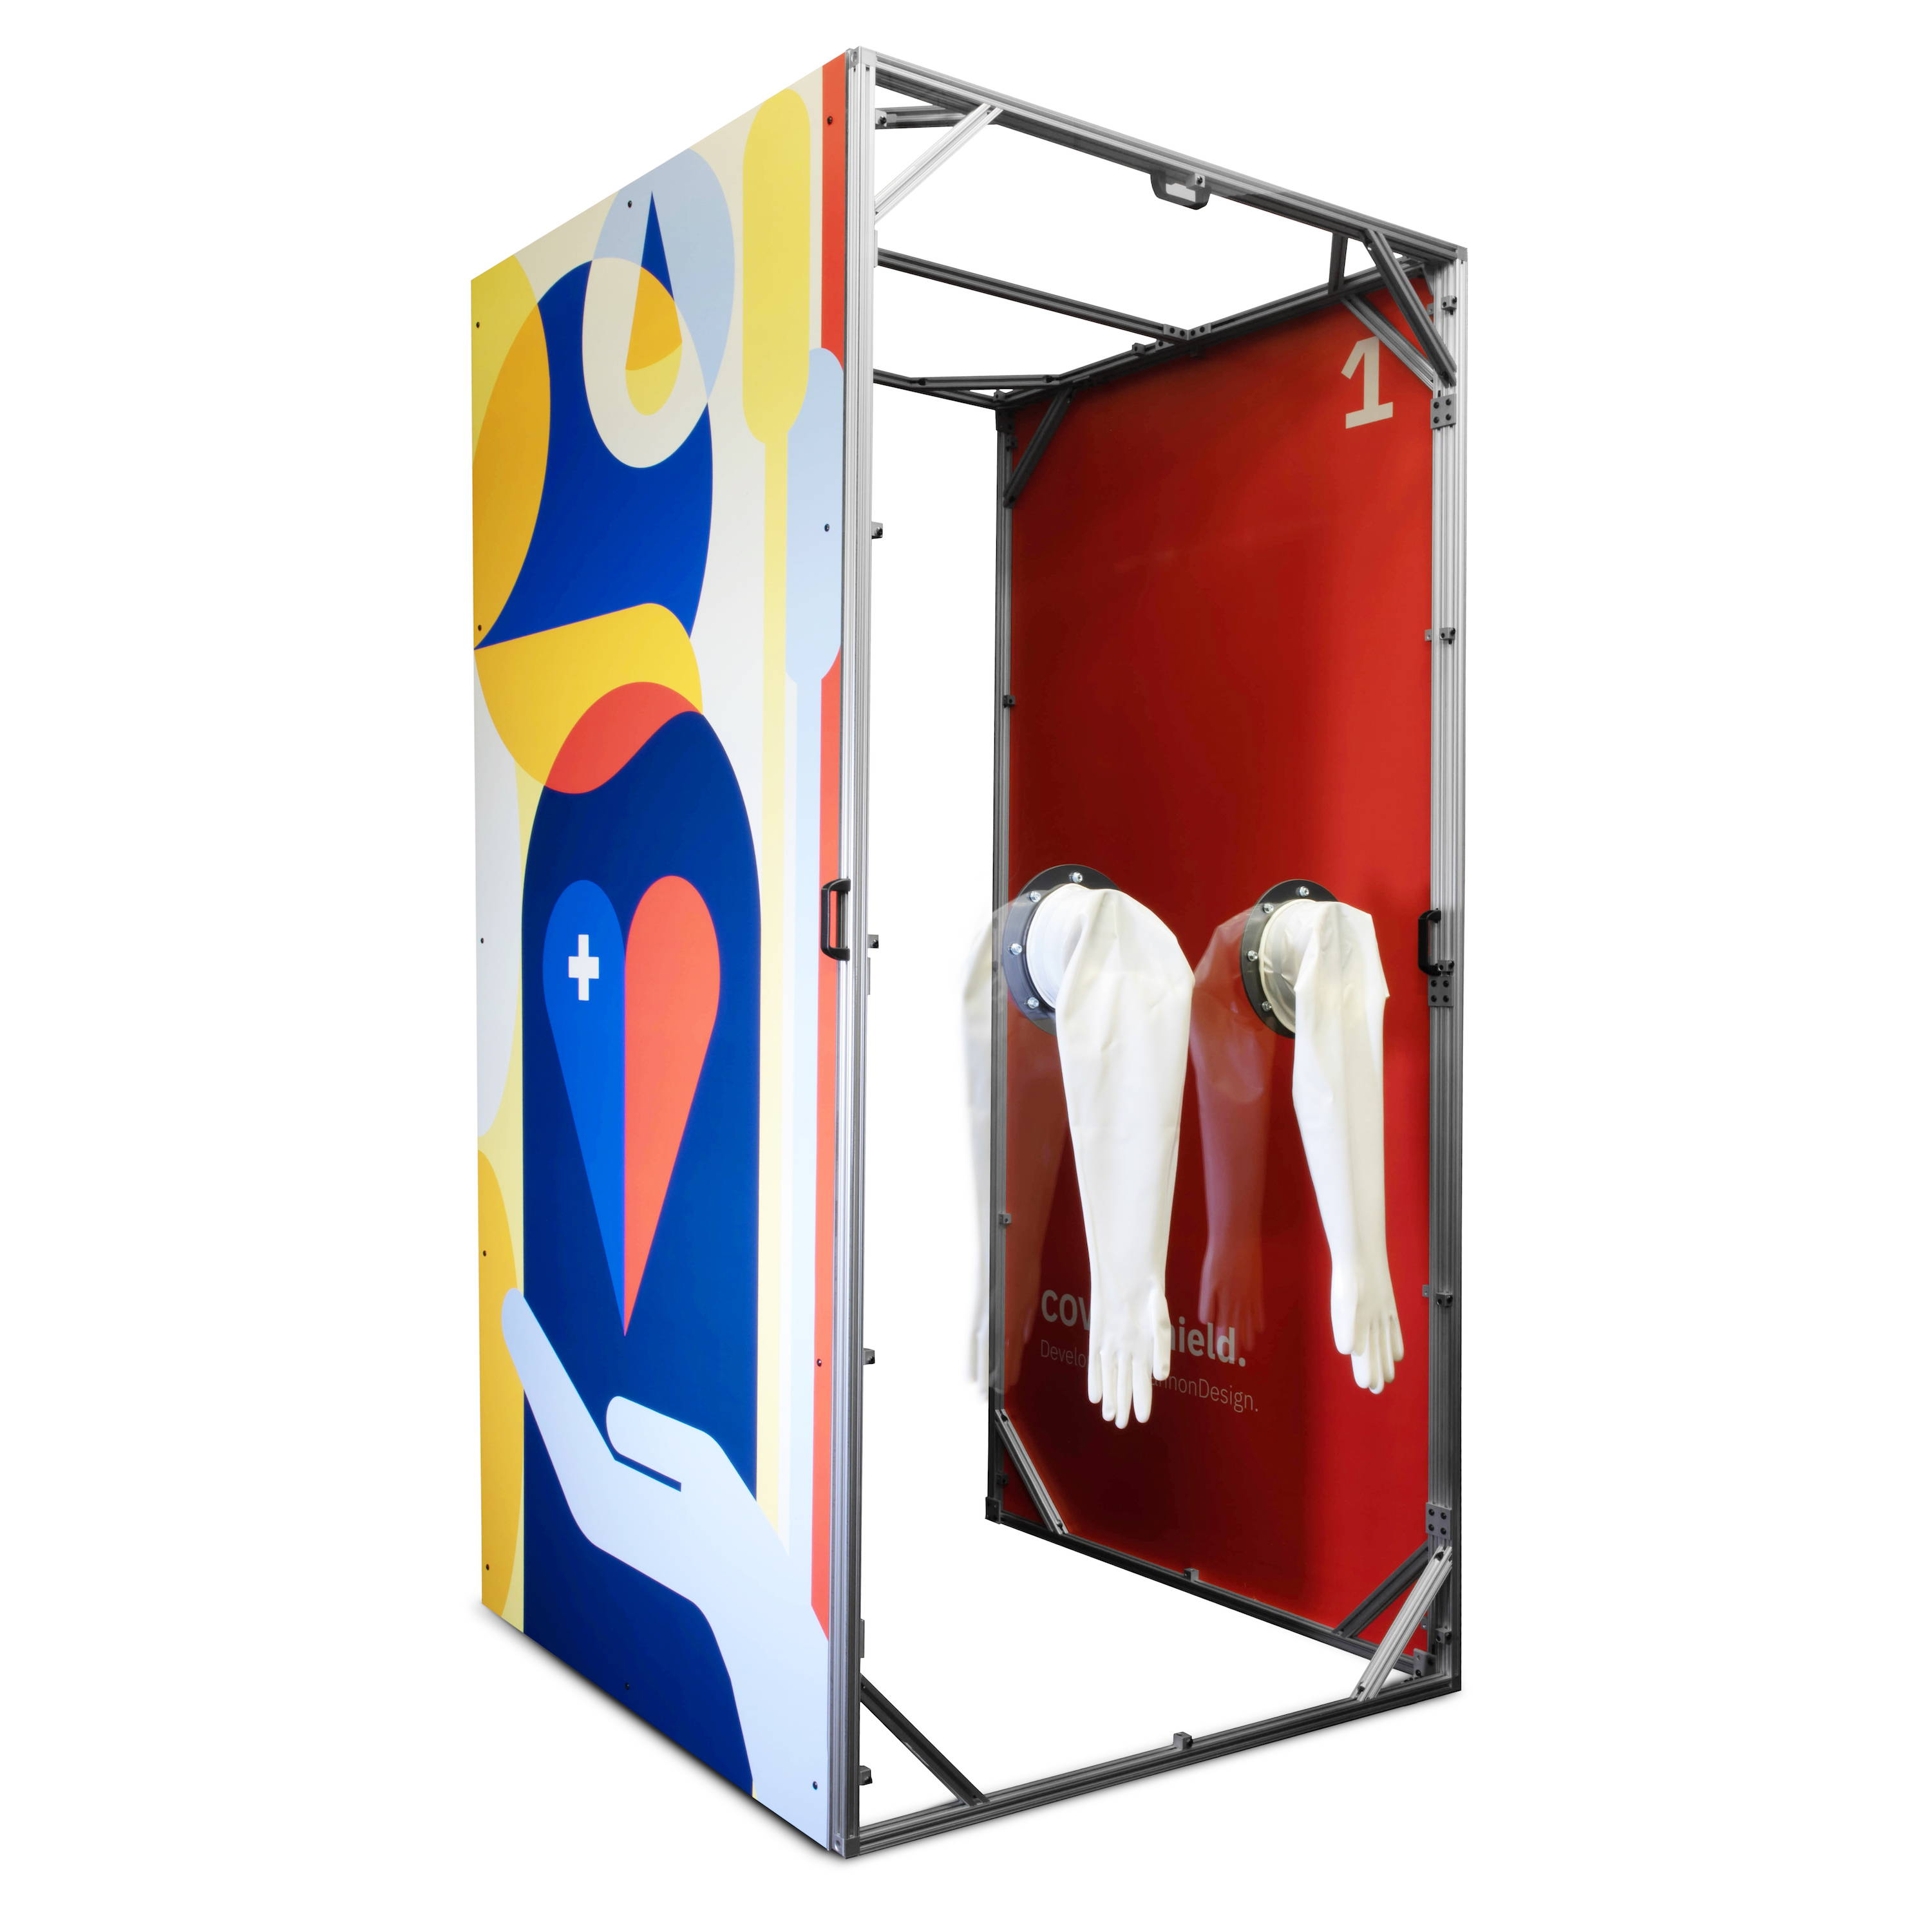 SnapCab COVID Shield testing pod for medical and healthcare facilities